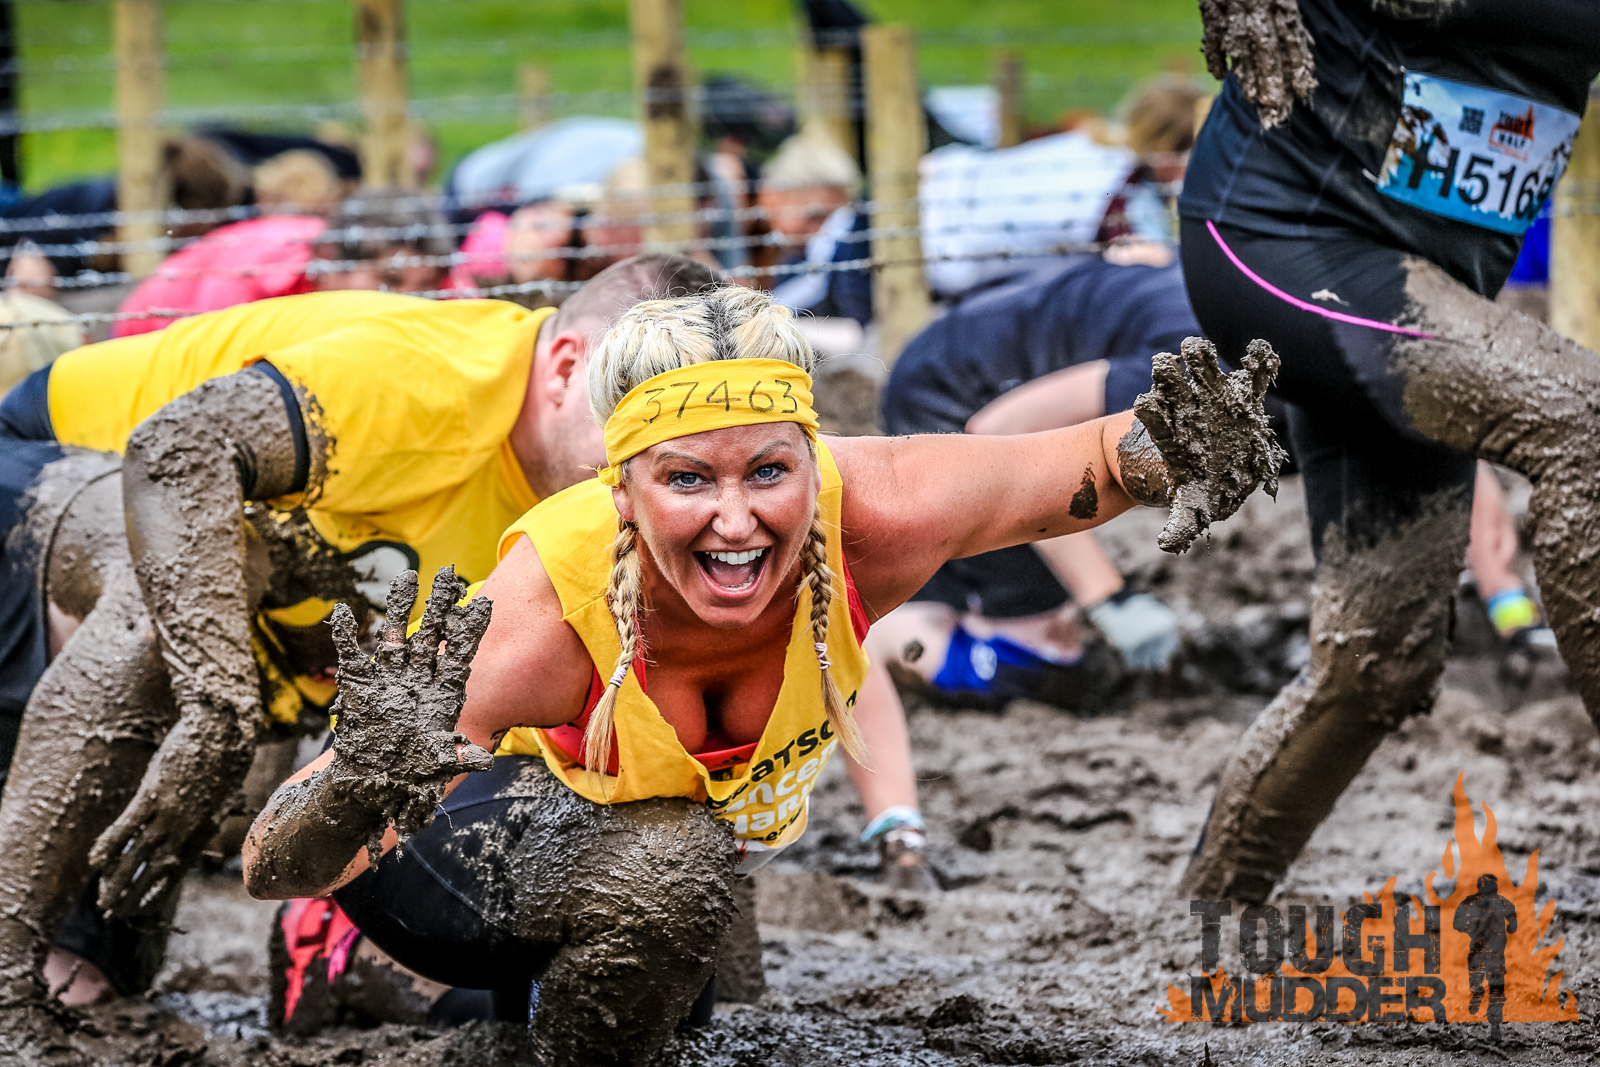 Tough-mudder-2017-sports-photography-edinburgh-glasgow-22.jpg